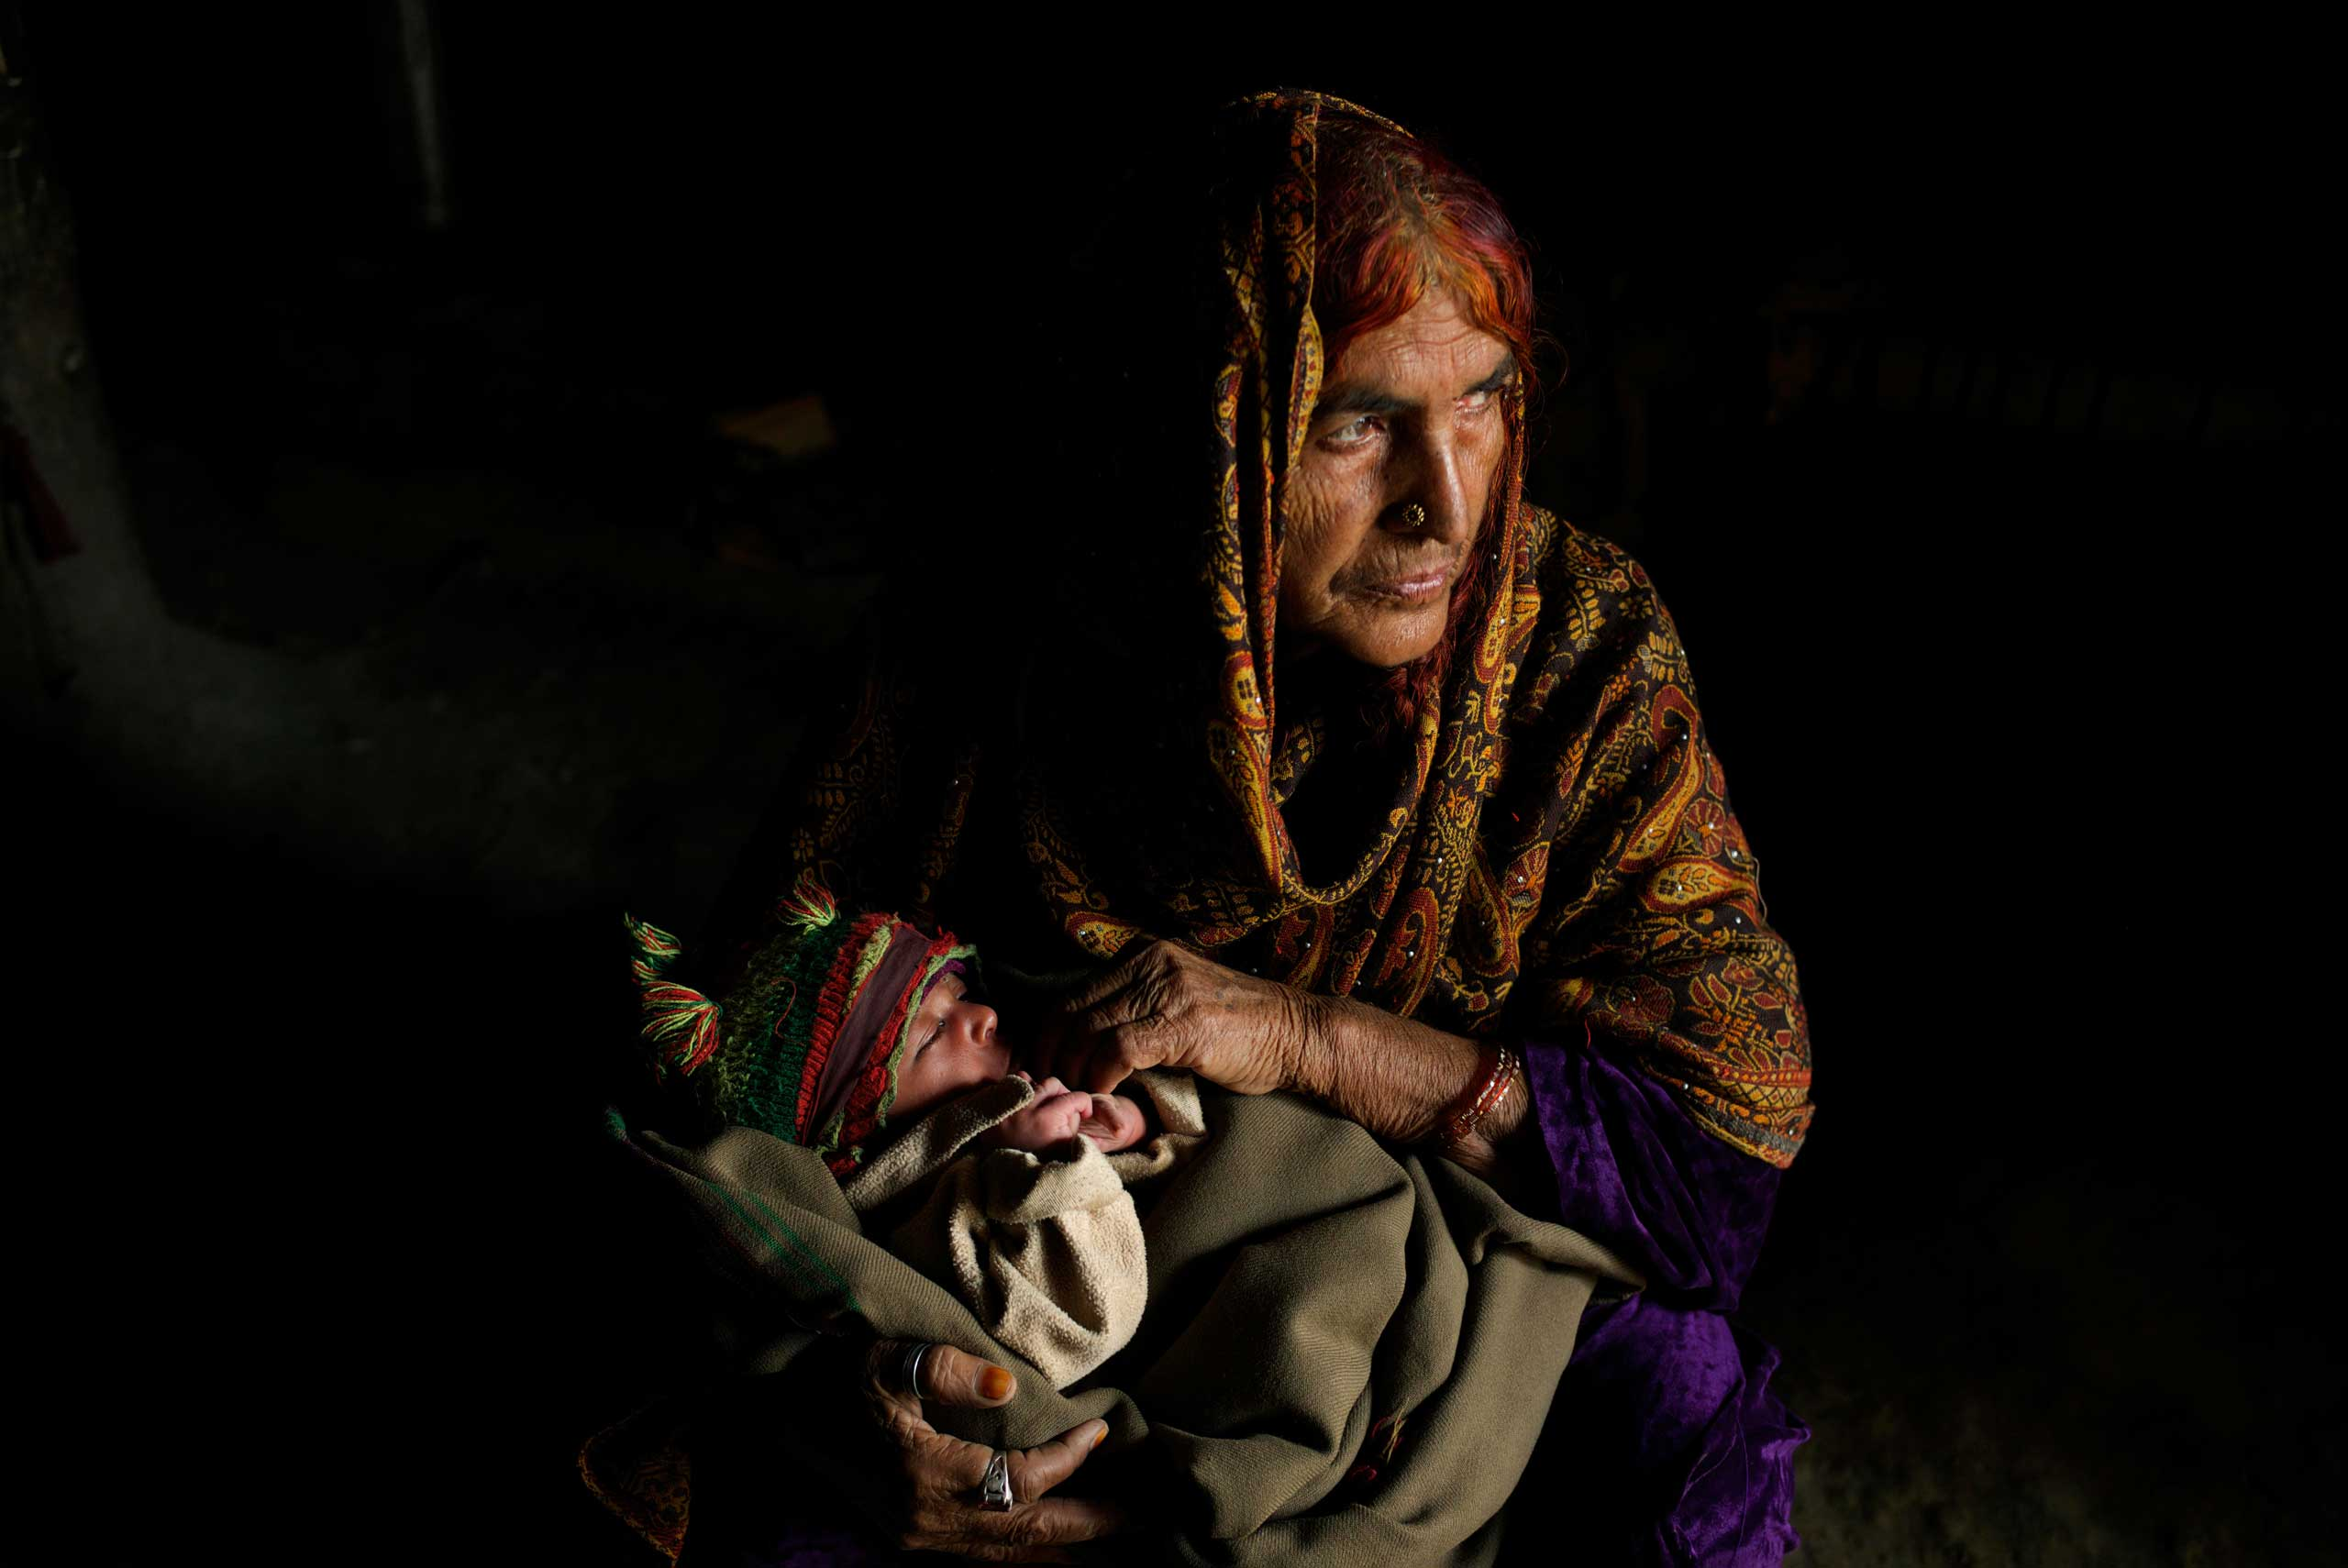 ISLAMABAD, PAKISTAN; FEBRUARY 2104                                Holding her 25 day old grandson Ziaullah, elderly Bacha Hilal squats down in the mud hut that has become home since escaping conflict in Bajaur.